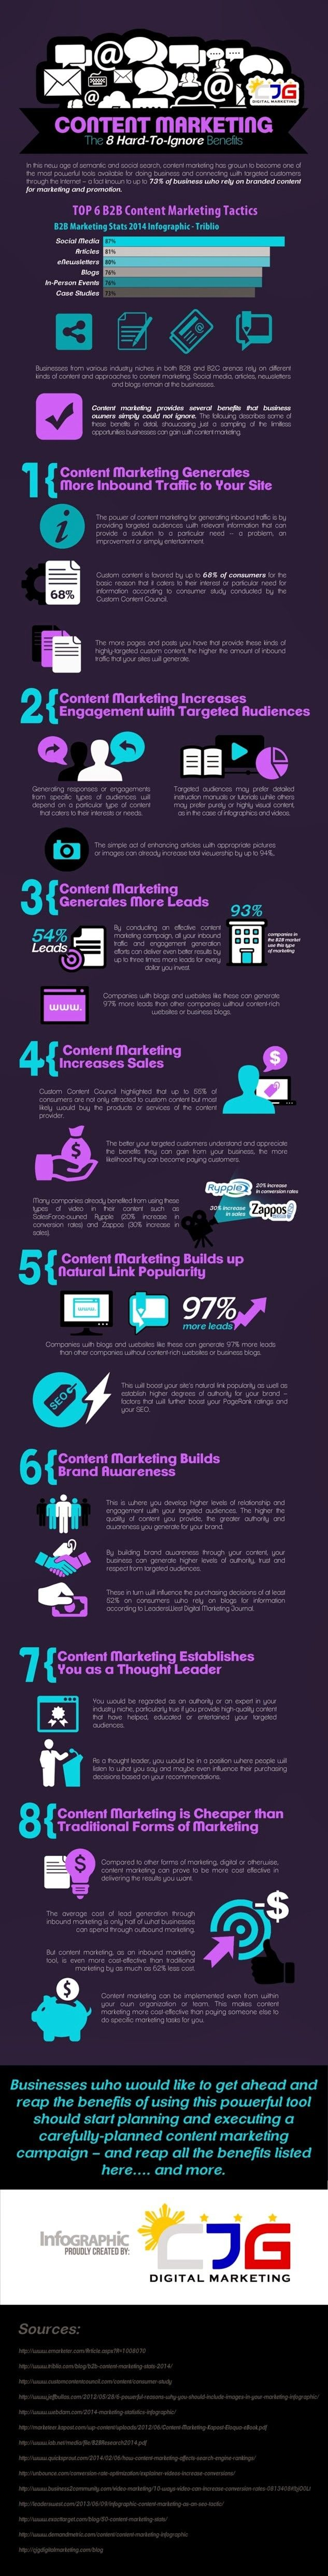 Infographic: 8 Hard-to-ignore Content Marketing Benefits #infographic #contentstrategy Visit our website at www.firethorne.org! #creativeadvertising #advertisement #creative #ads #graphic #design #marketing #contentmarketing #content